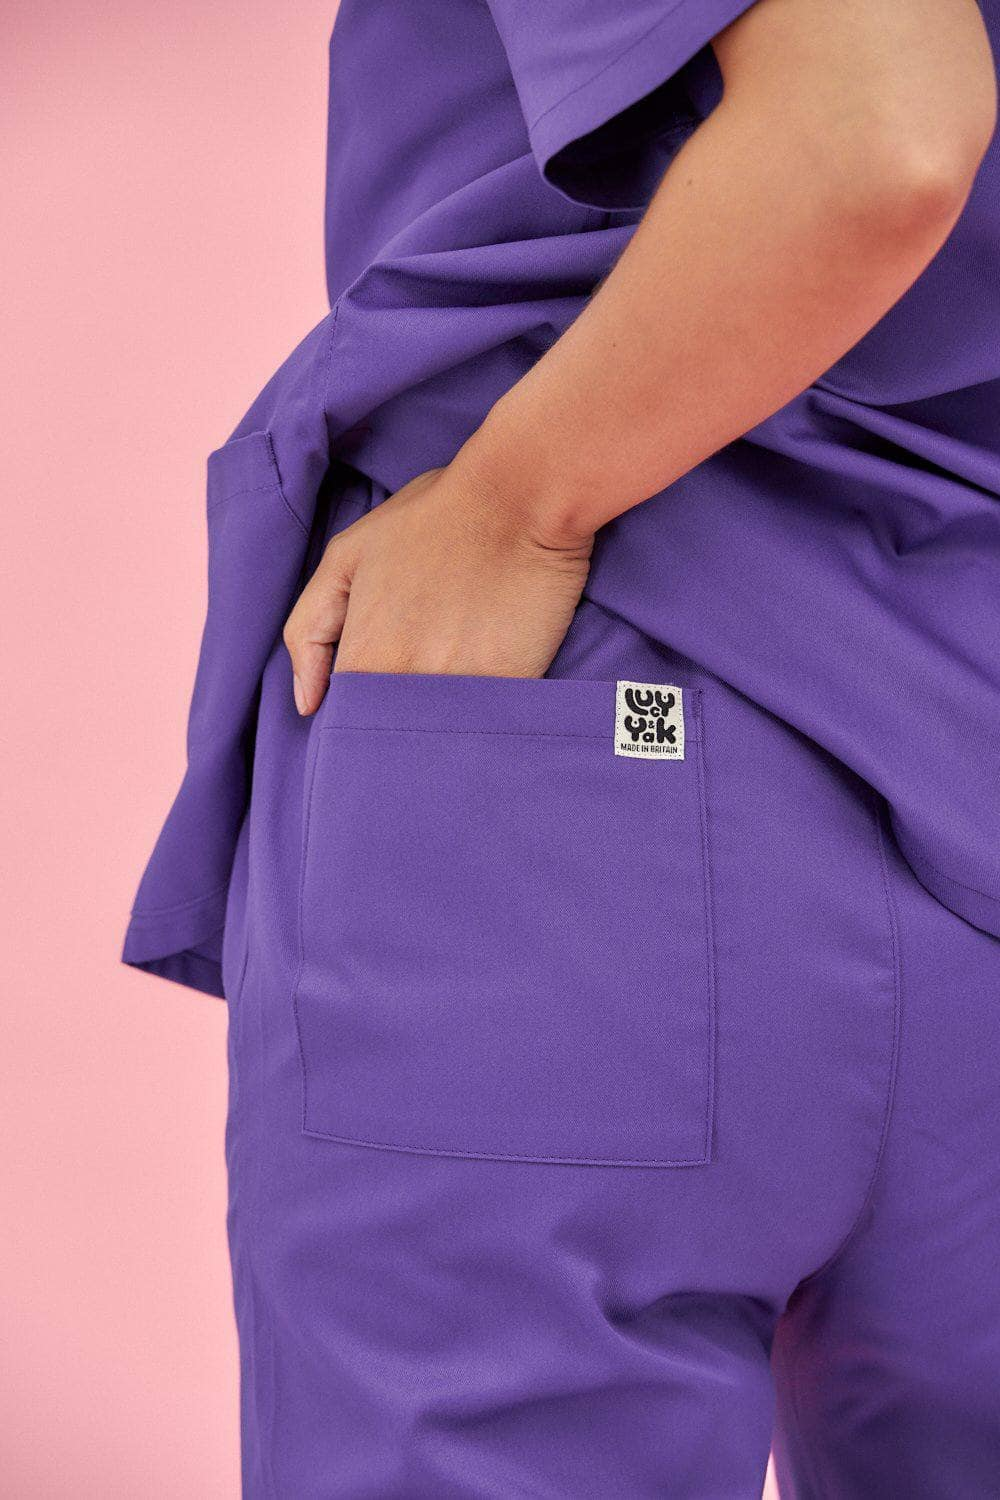 Lucy & Yak trousers Scrubs Trousers In Purple (correct price needs adding)